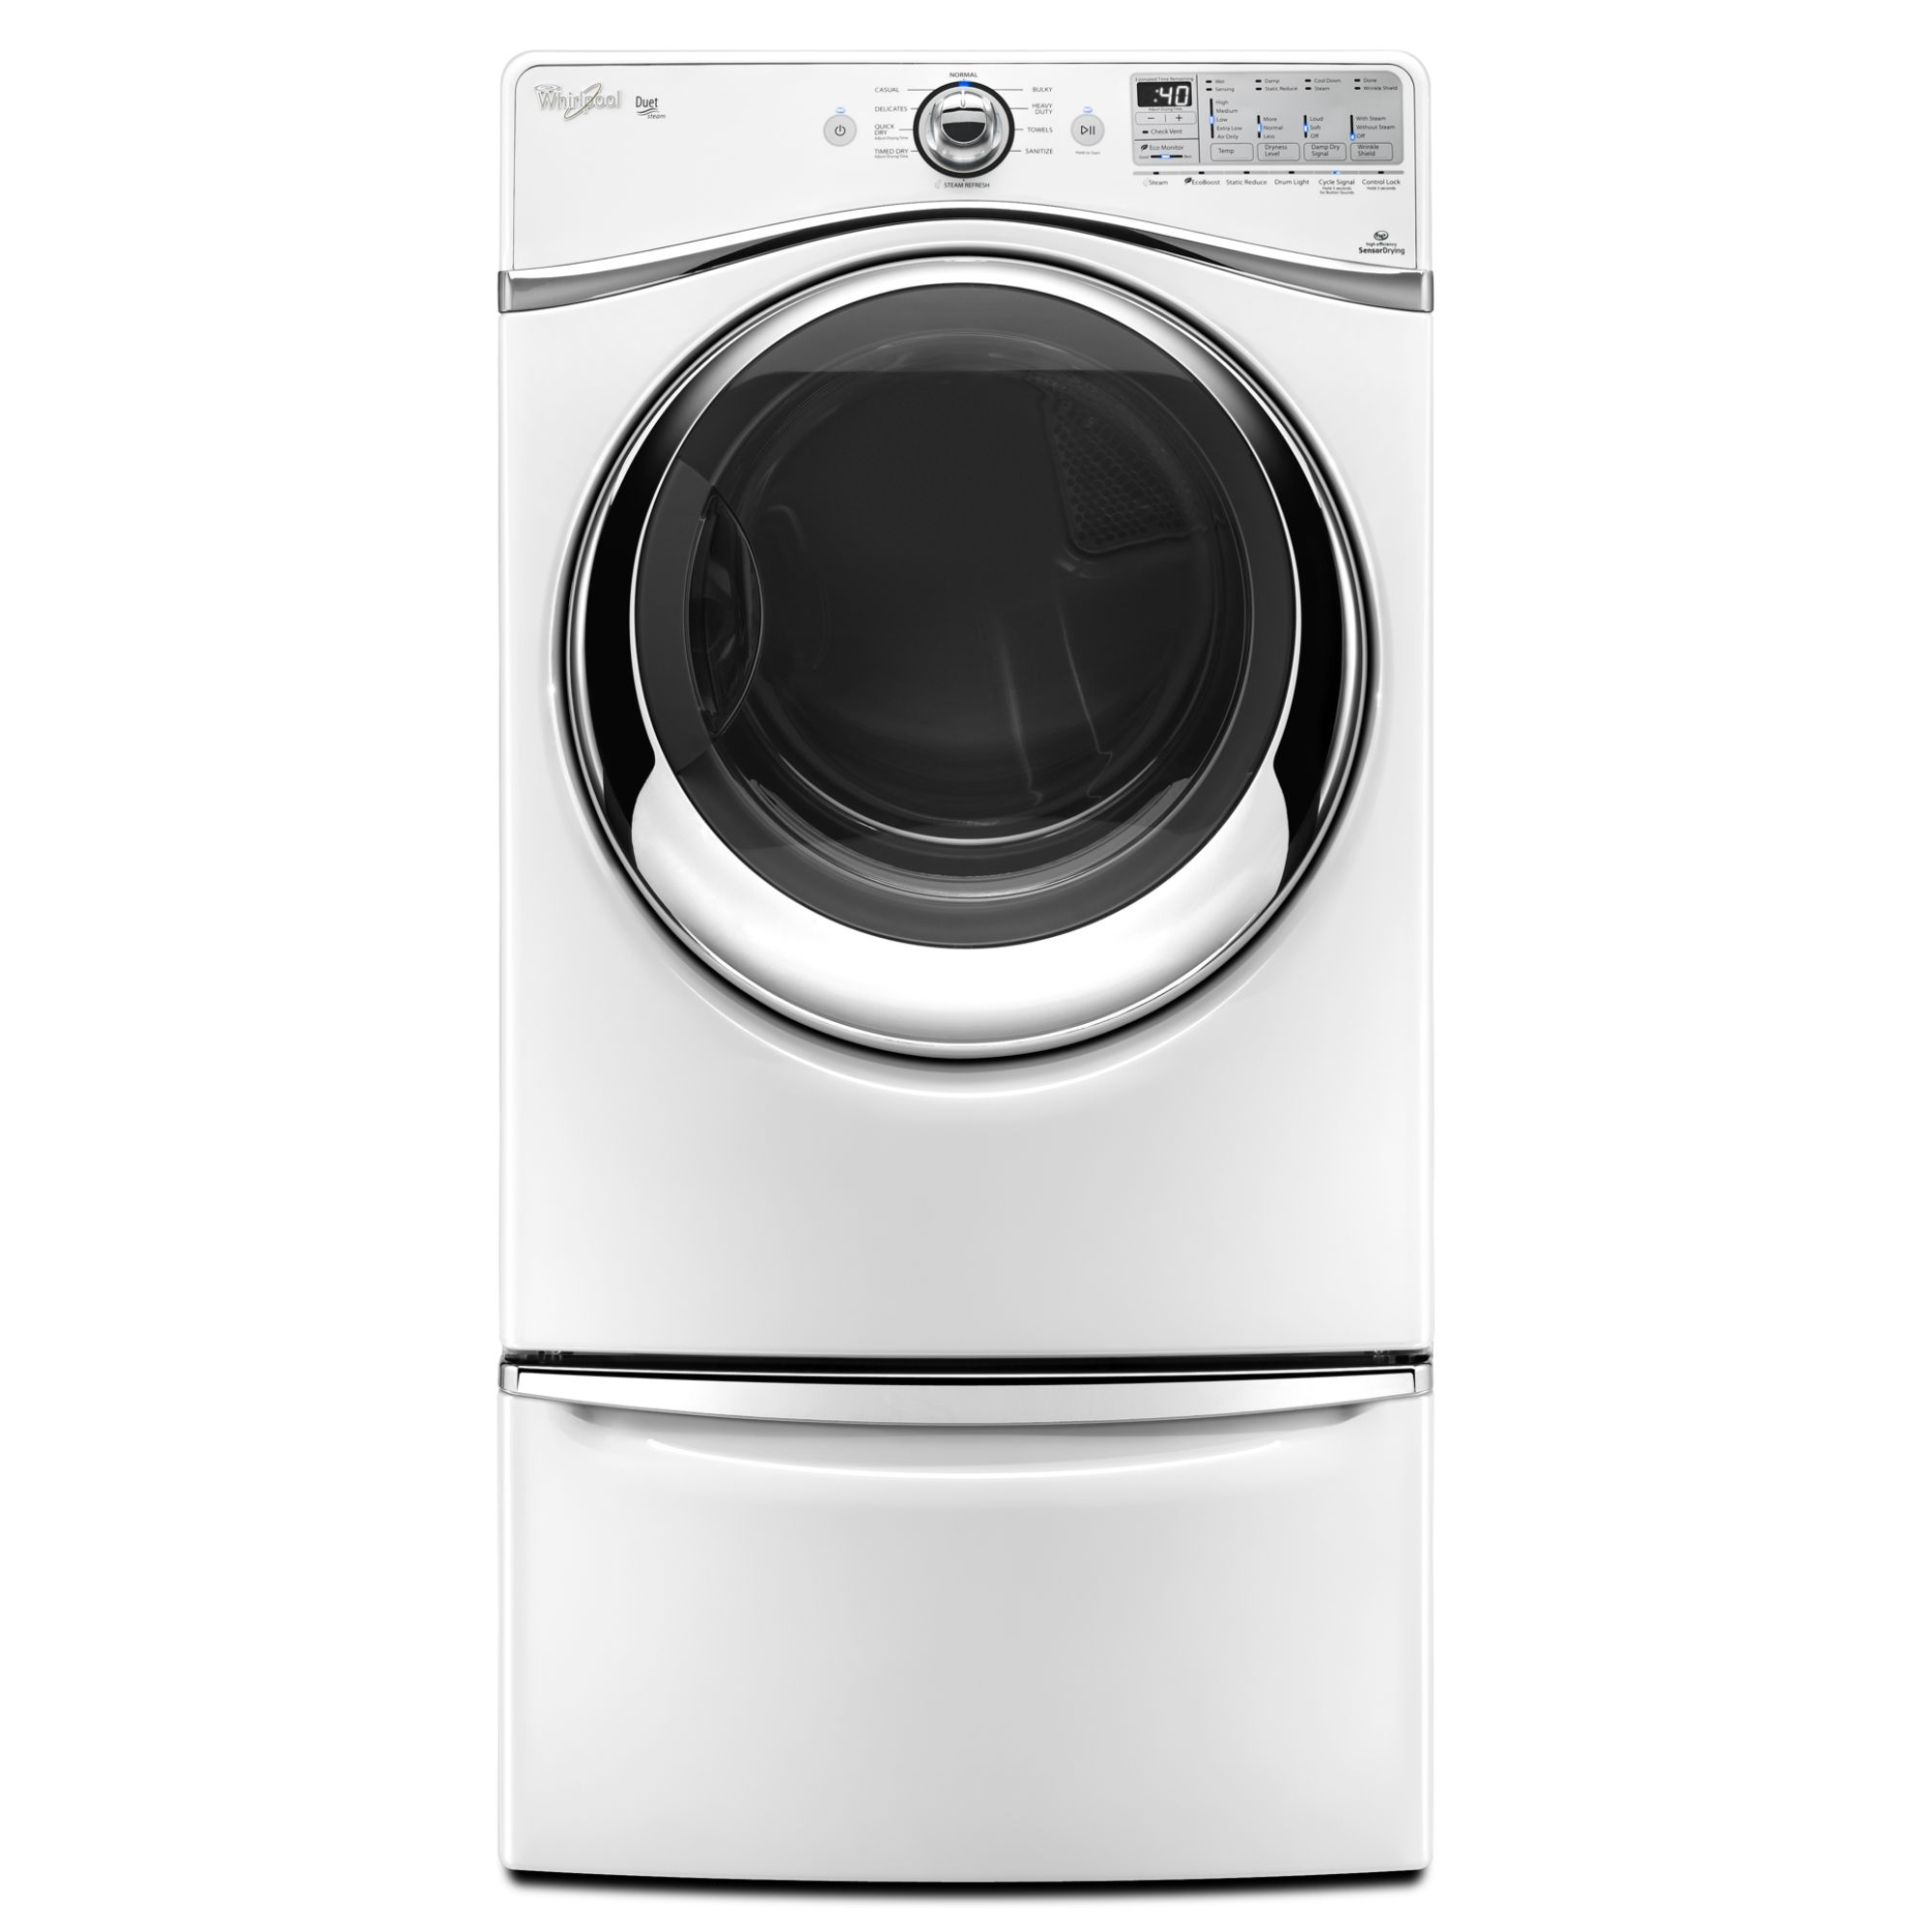 Whirlpool Duet® 7.4 cu. ft. Gas Dryer w/ Tap Touch Controls - White